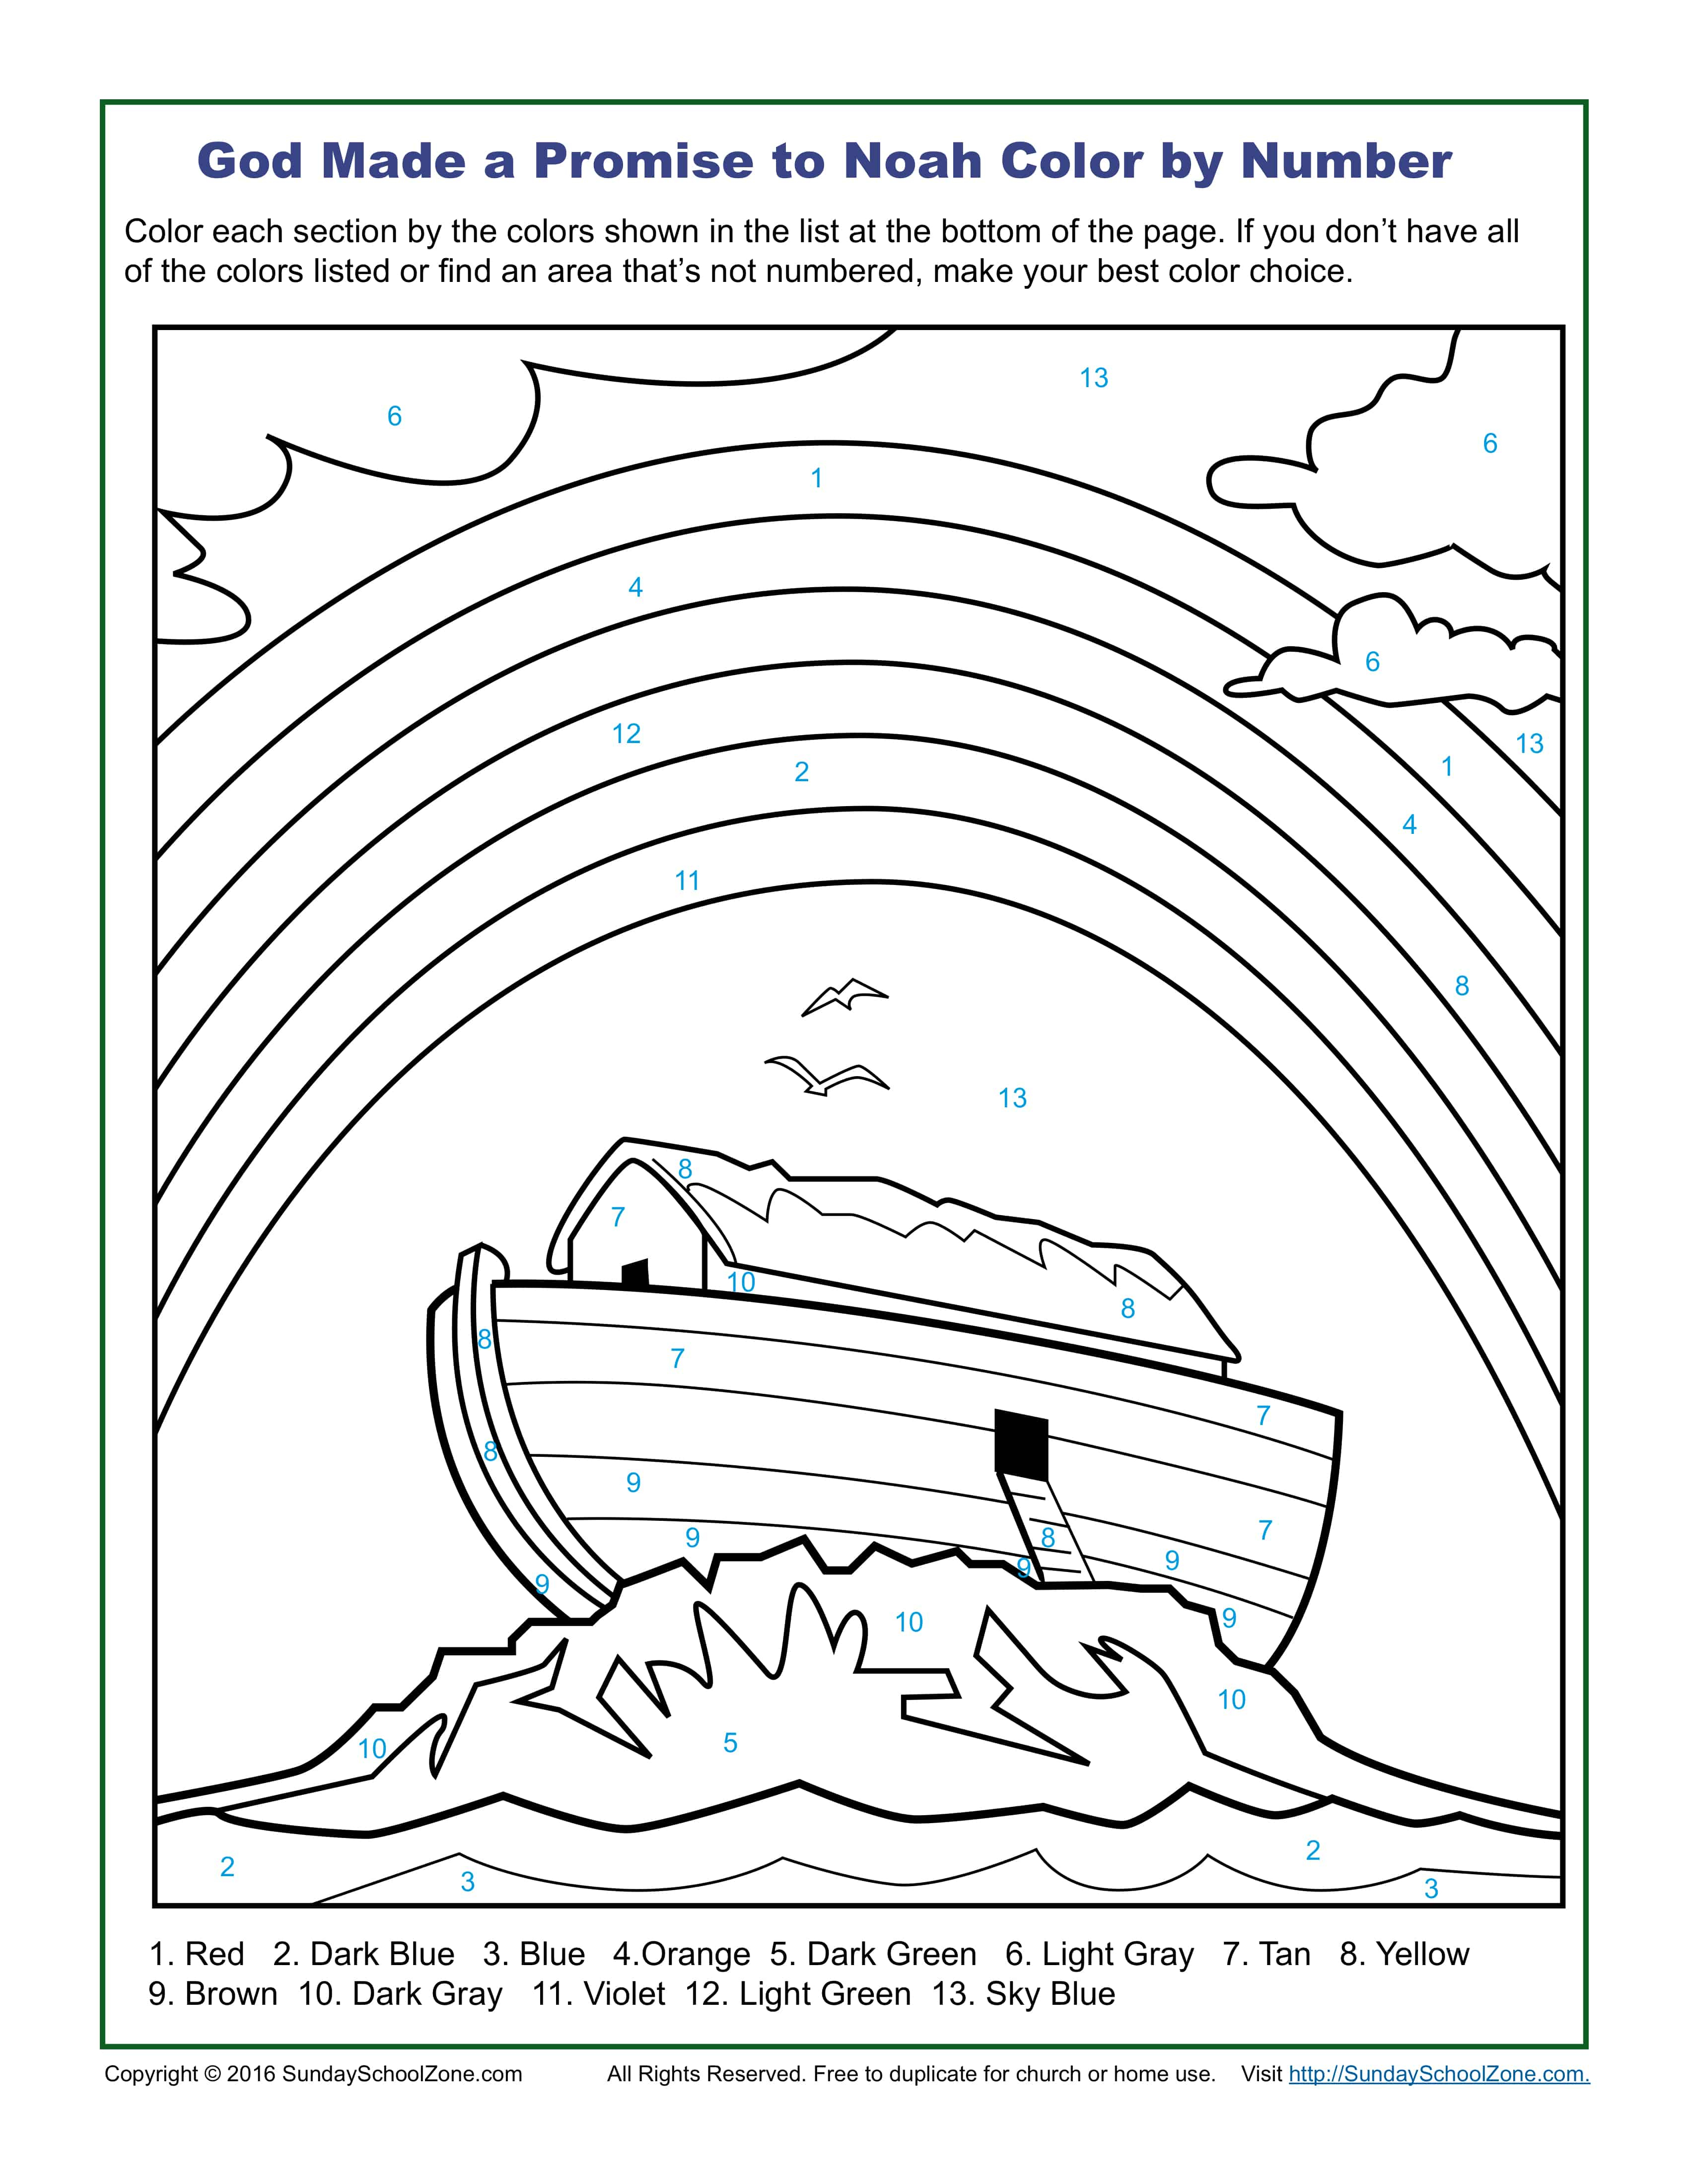 Free Coloring Pages Philip And The Ethiopian Color Number Bible Coloring Pages On Sunday School Zone